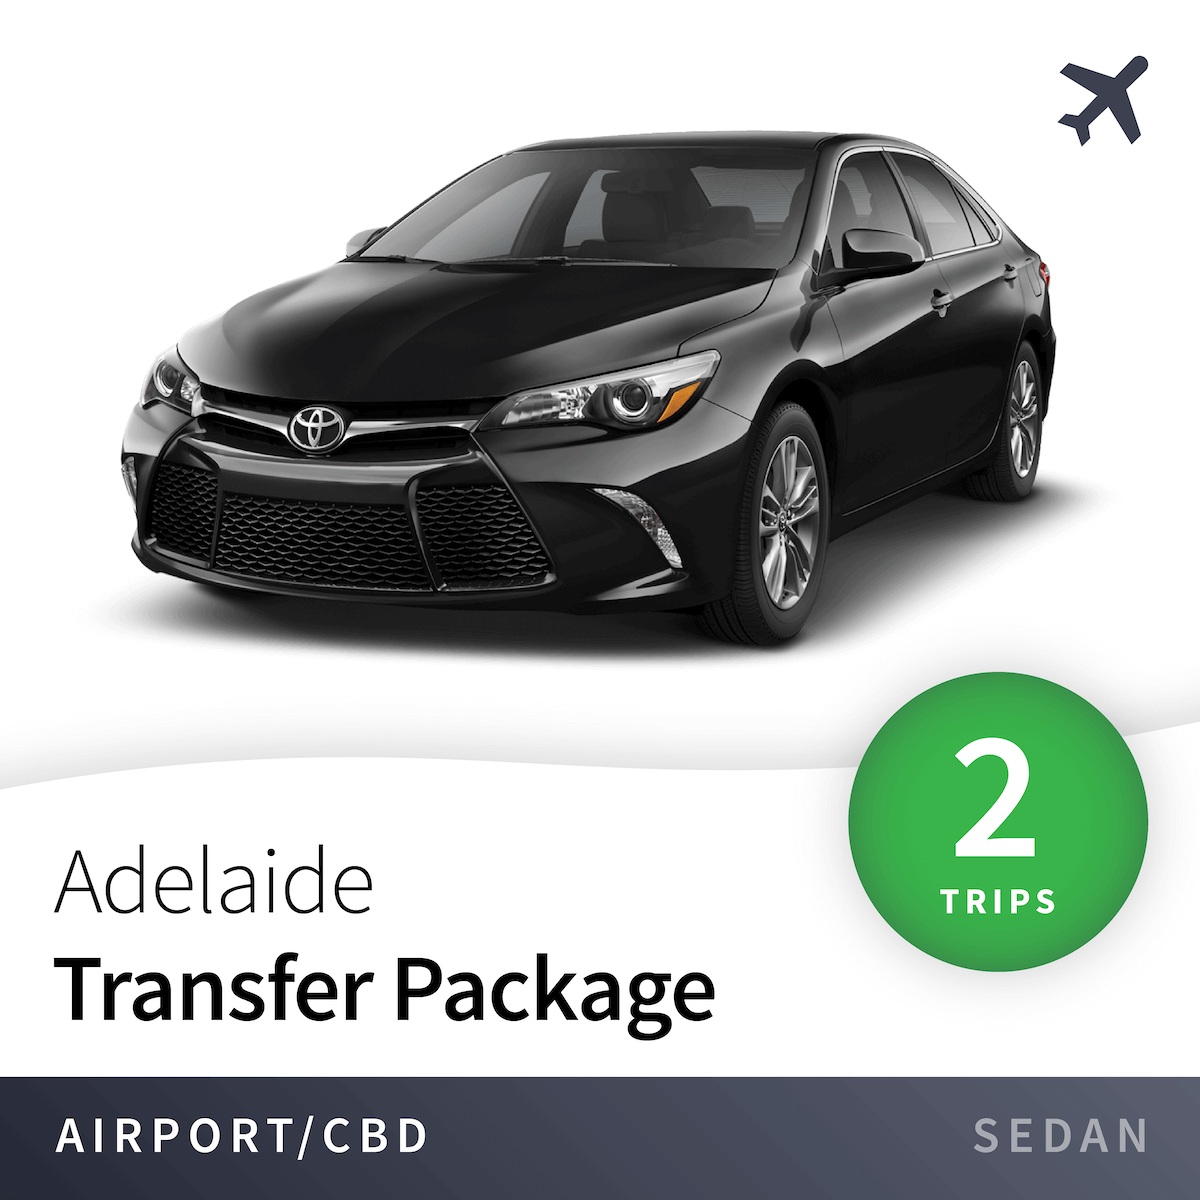 Adelaide Airport Transfer Package - Sedan (2 Trips) 8